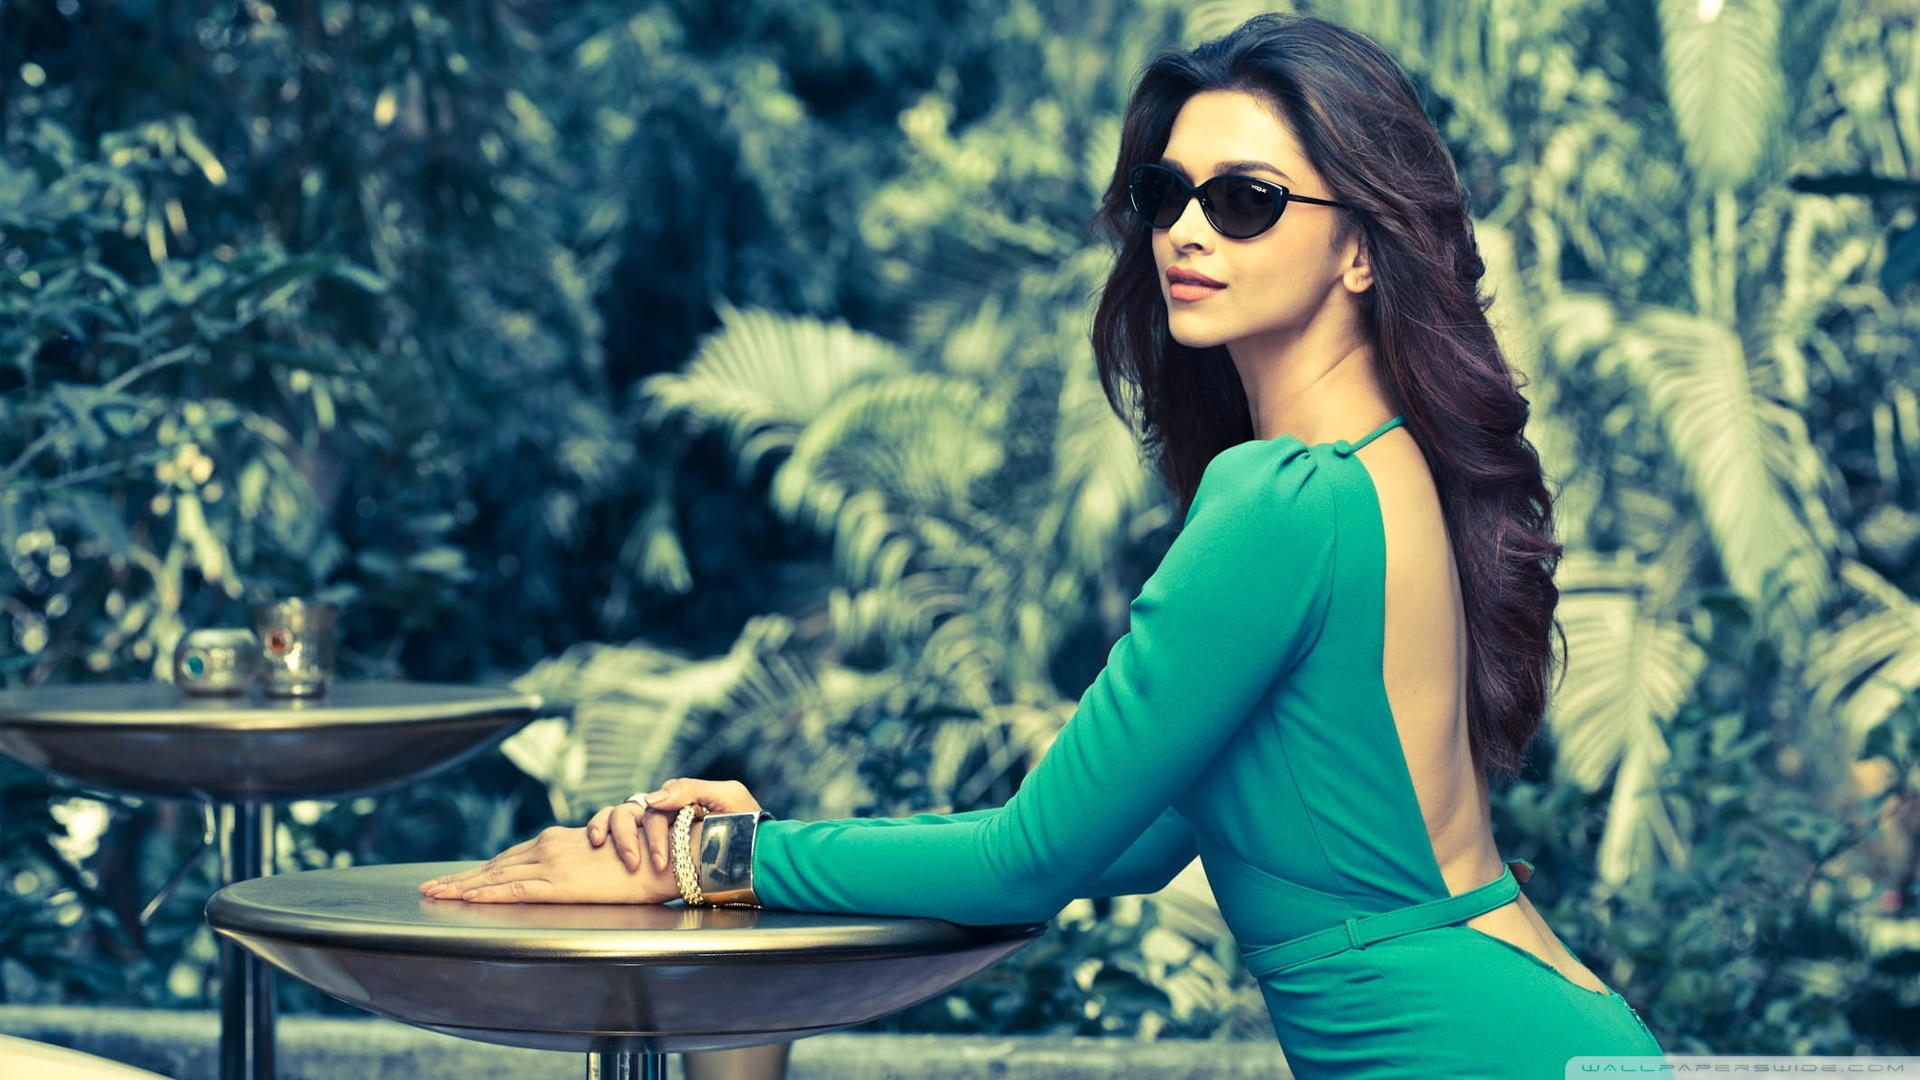 Deepika Padukone Hot Pics: 10 best from Photoshoots